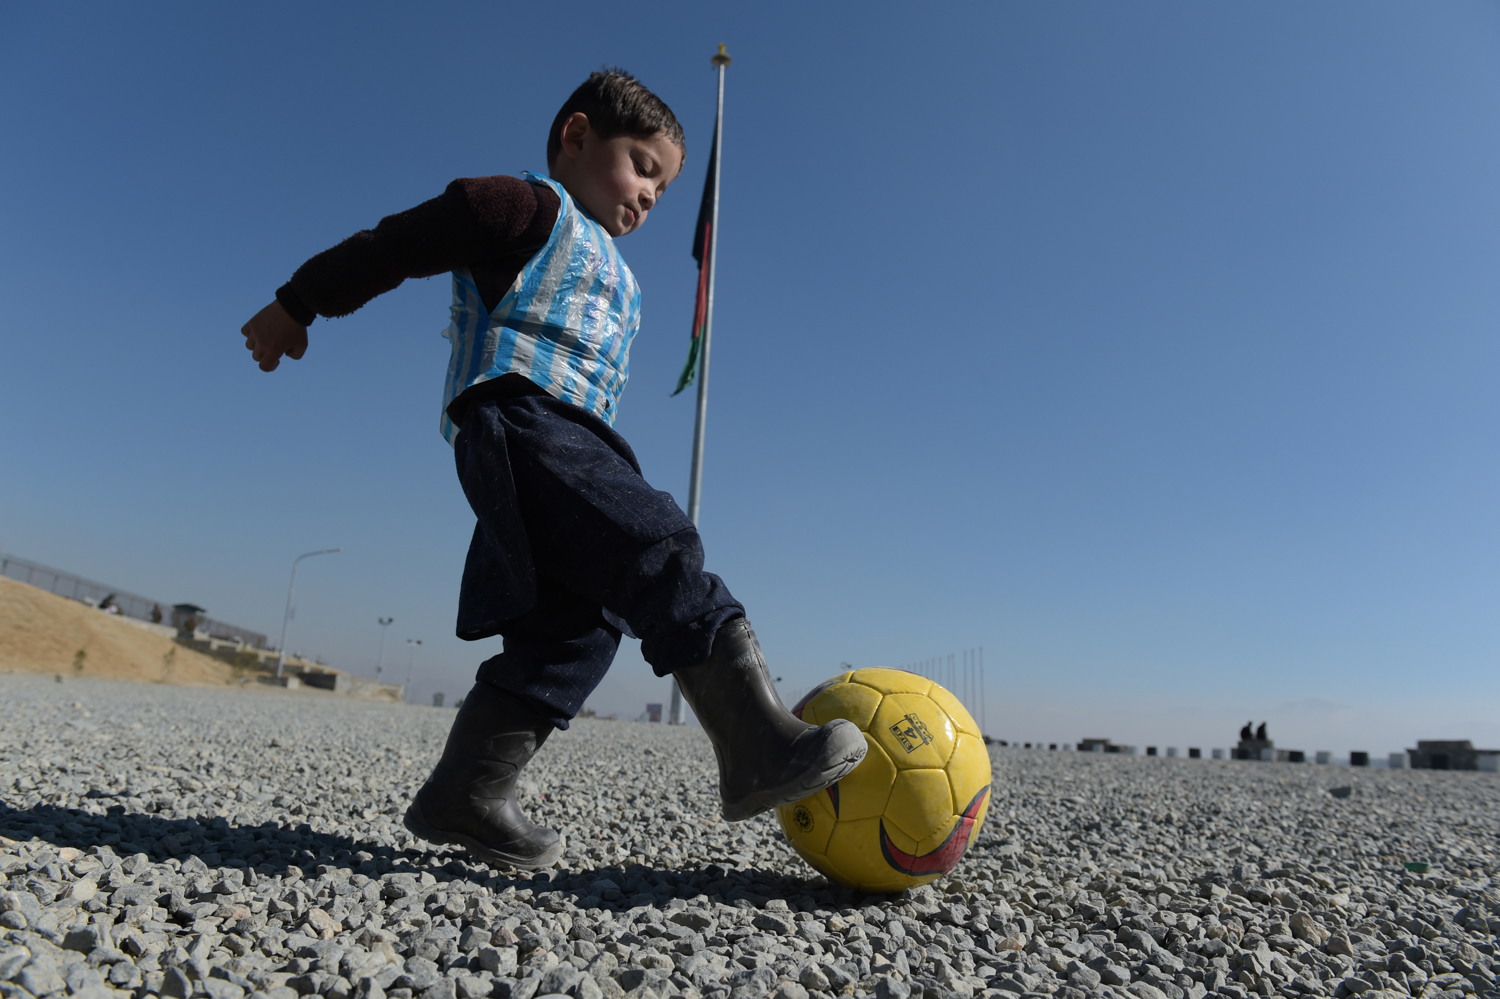 Afghan boy five-year-old Murtaza Ahmadi, a young Lionel Messi fan, plays football in Kabul on February 1, 2016. Barcelona star Lionel Messi is hoping to arrange a meeting with an Afghan boy who shot to fame after pictures of him dressed in a striped plastic bag jersey went viral, Kabul's football federation said on February 1. AFP PHOTO / SHAH Marai / AFP PHOTO / SHAH MARAIAz ötéves Lionel Messi rajongó  Murtaza Ahmadi zacskókból készült mezében focizik KabulbanFotó: Shah Marai / AFP